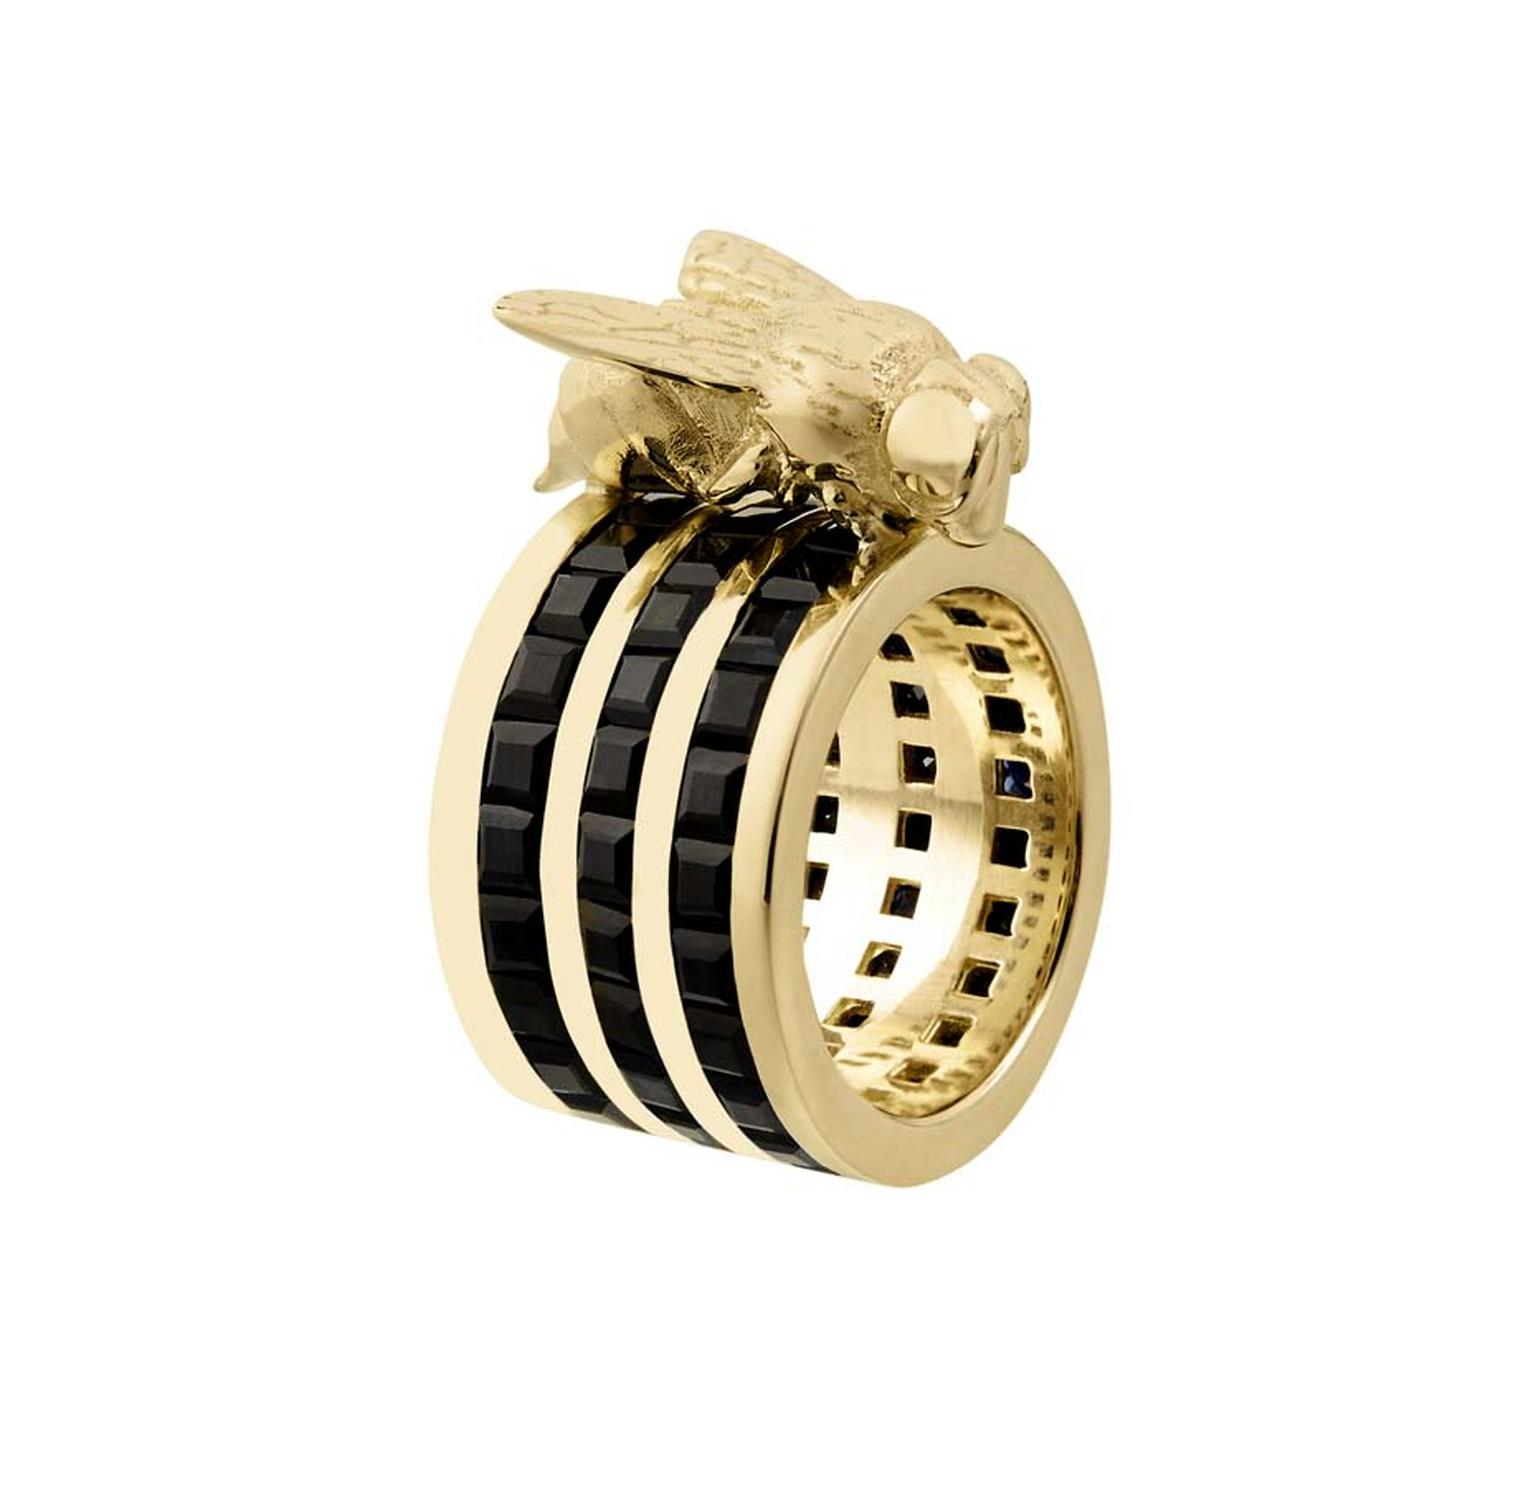 Tessa Packard's 18ct yellow gold Cocktail Sting ring from the Predator/Prey collection, featuring three bands of channel-set black sapphires topped with a solid gold wasp.